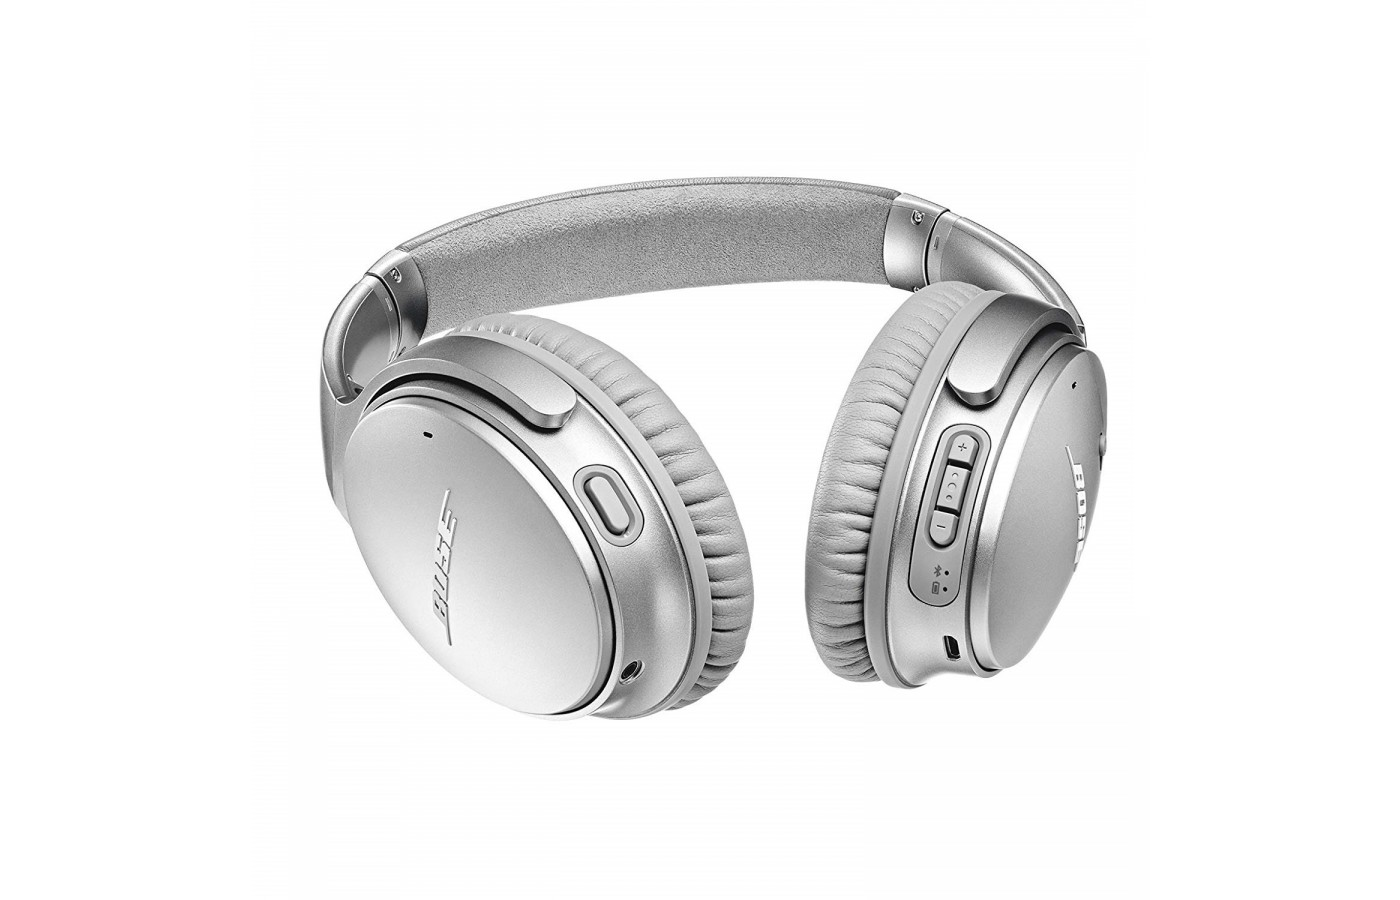 The Bose QuietComfort 35 offers plush synthetic leather ear cups for comfort.